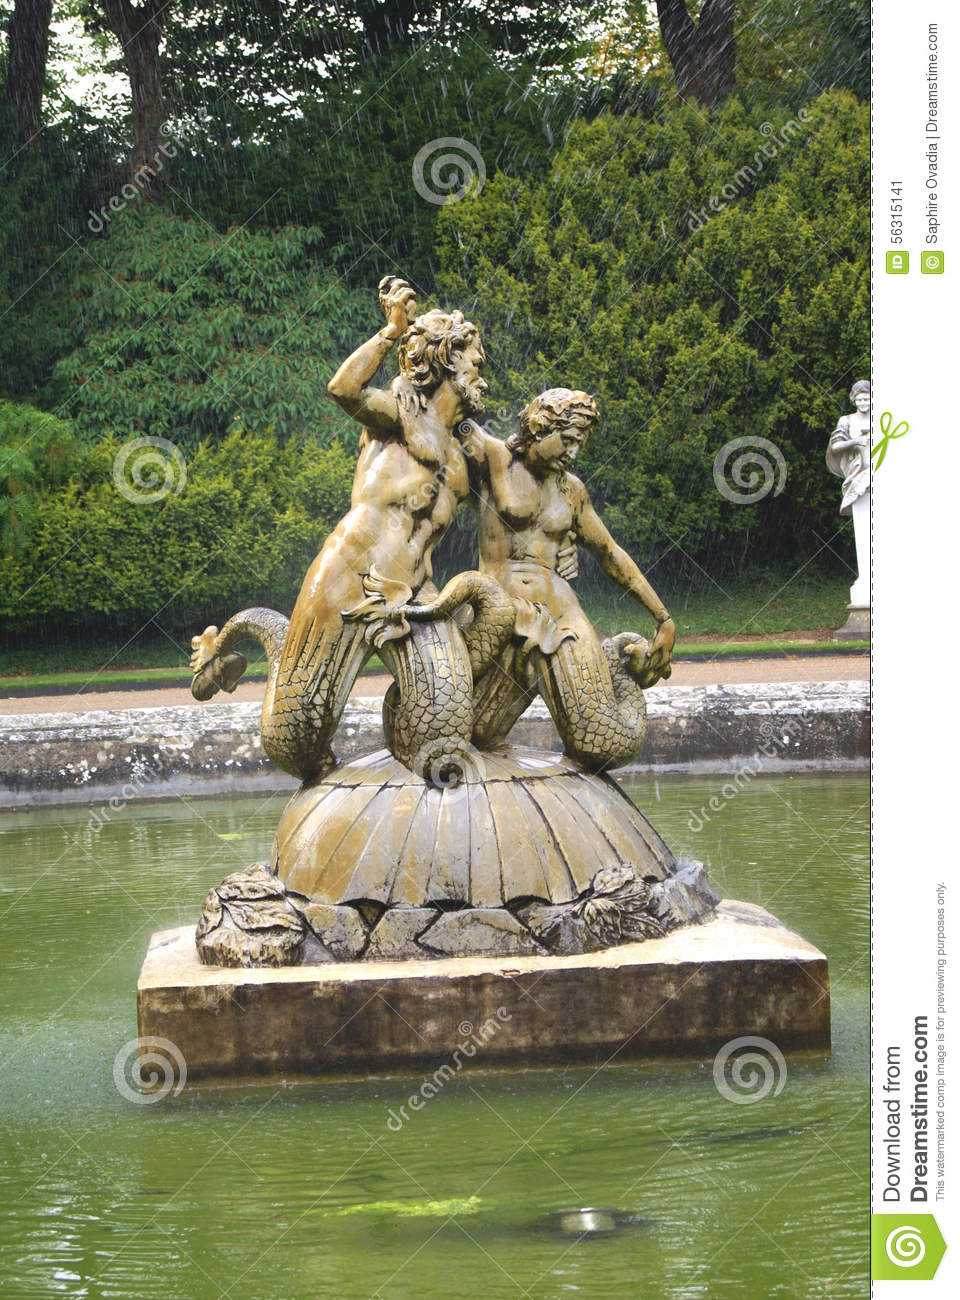 Mermaid Fountain At A Garden In England, Europe